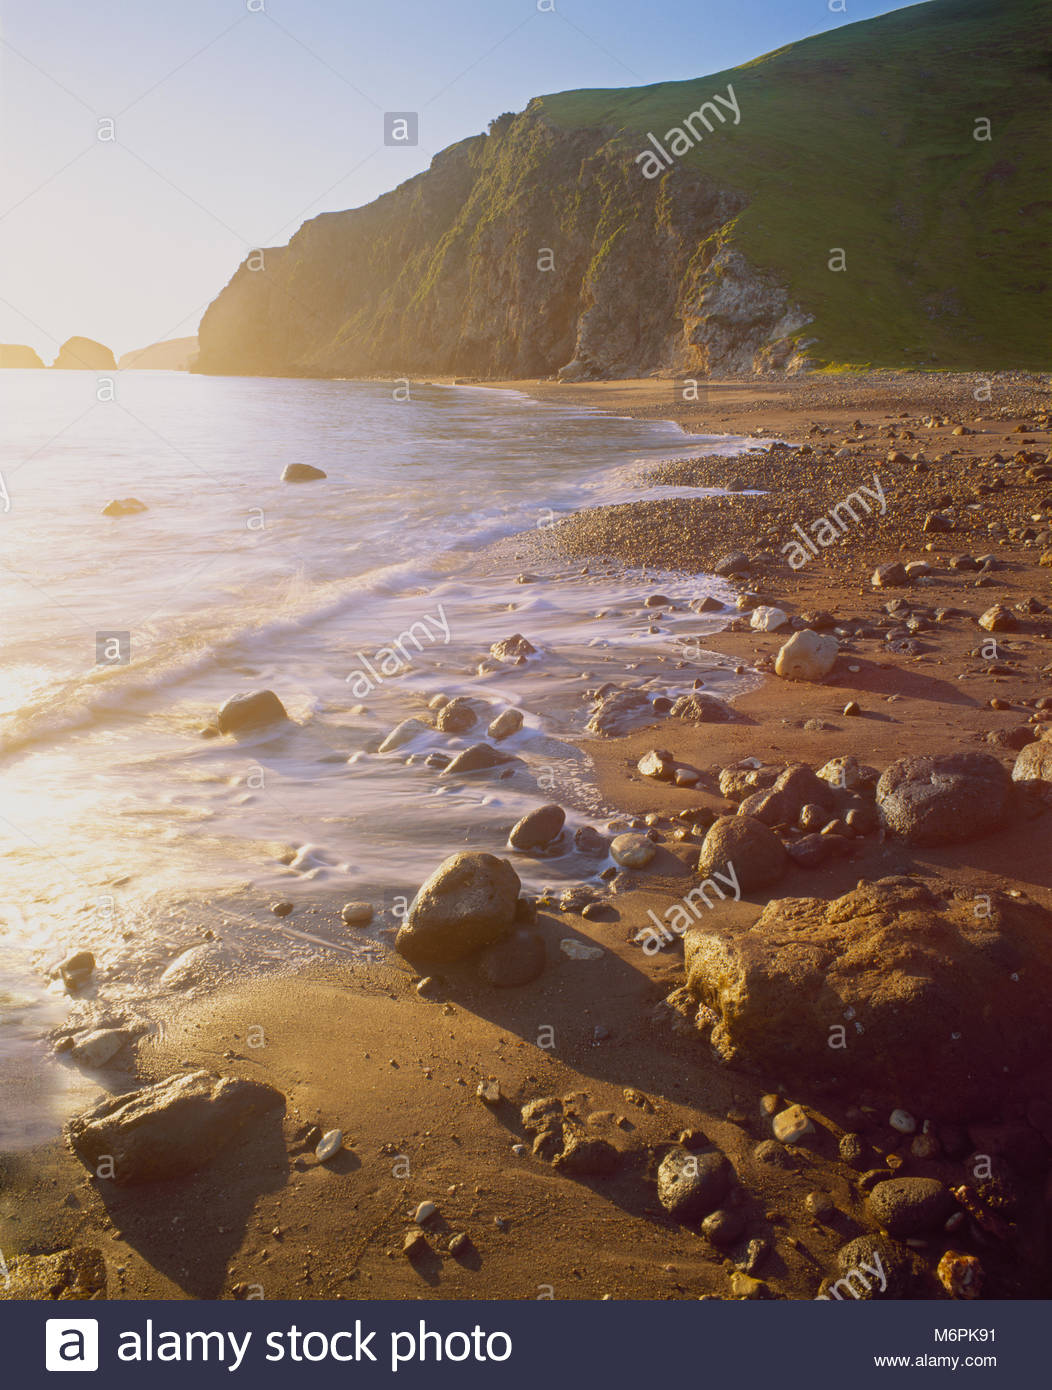 0603-3007  Copyright: George H.H. Huey Beach at Scorpion Anchorage at sunrise.  East end Santa Cruz Island, Channel - Stock Image